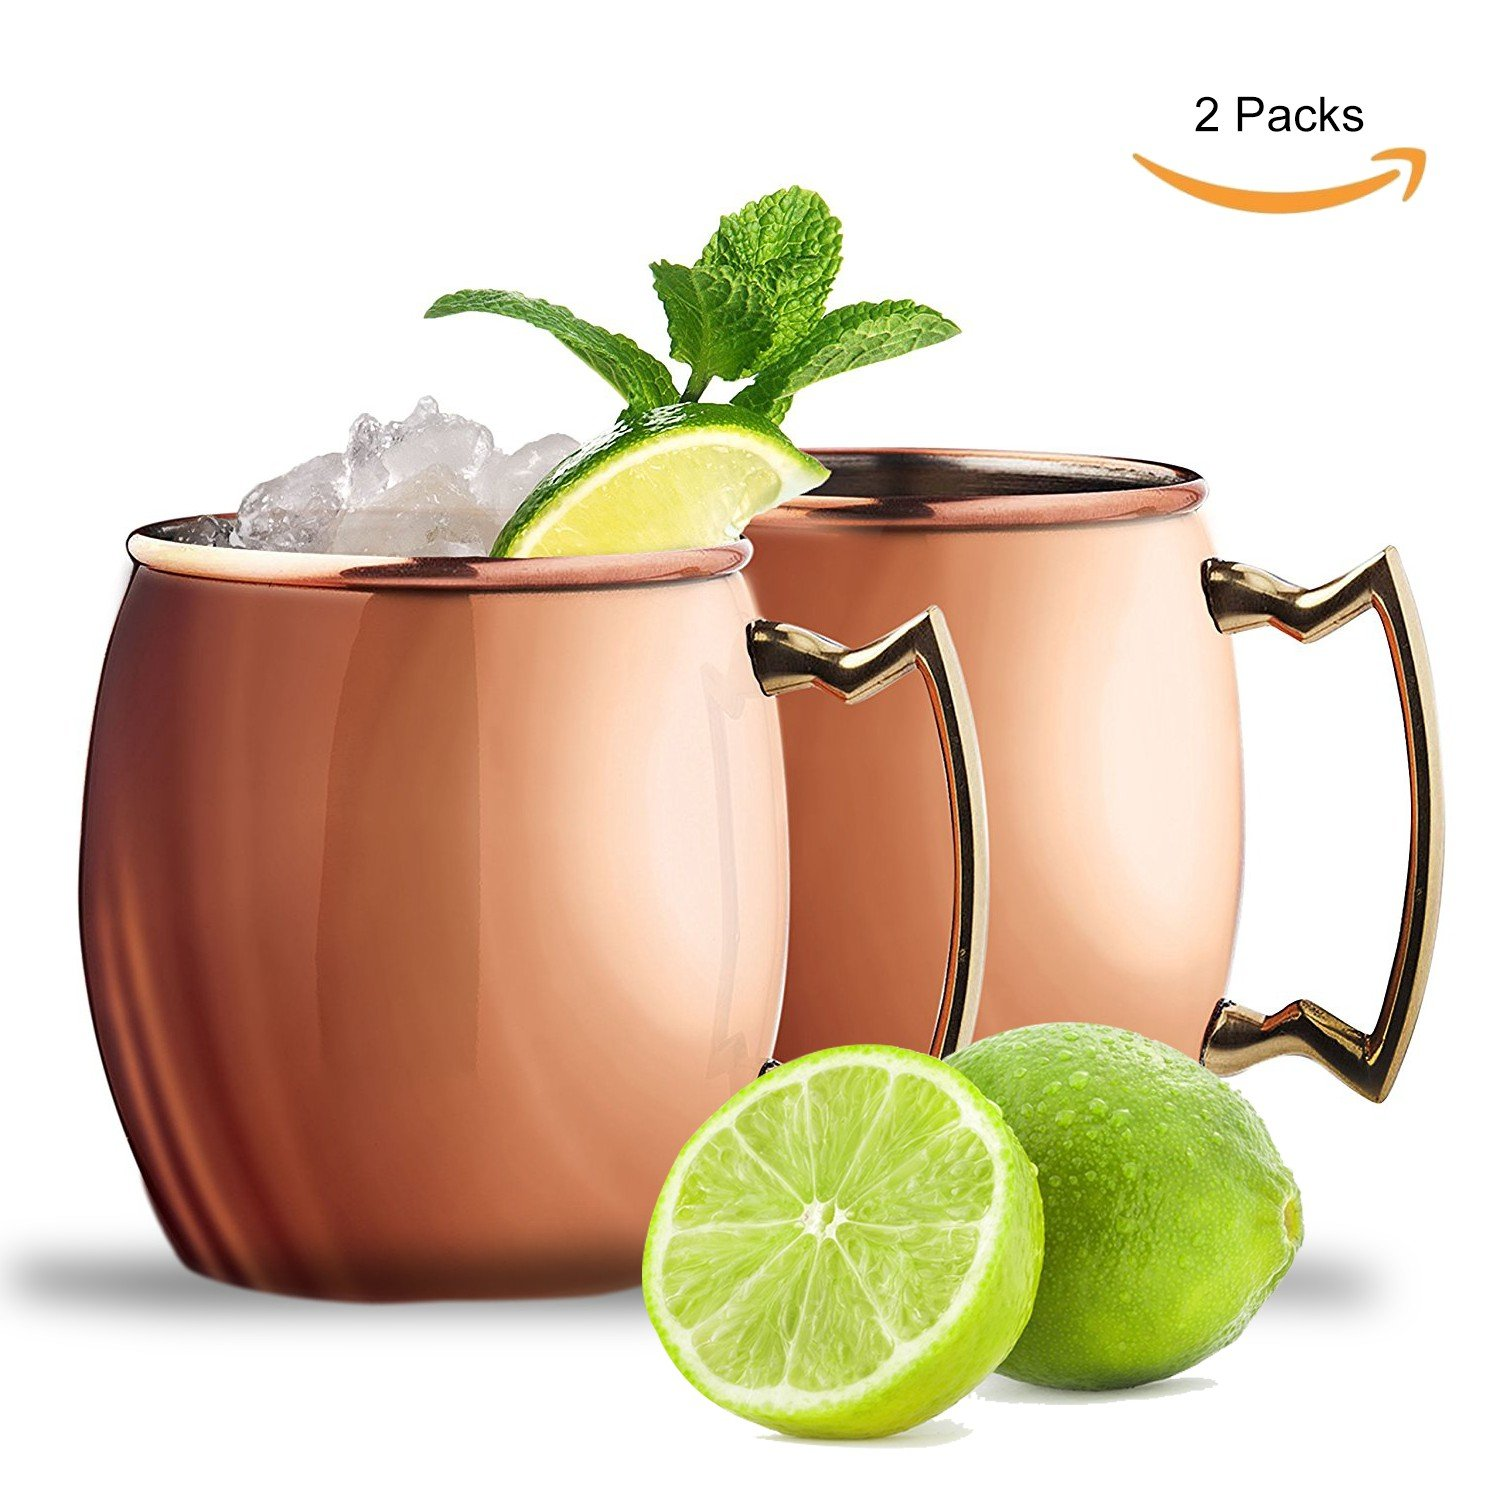 ZALALY Moscow Mule Copper Mugs Set of 2 - 100% Food Safe Pure Solid Drinking Copper Cups,18 Oz Handmade Hammered Mugs,Stainless Steel Lining (Smooth)